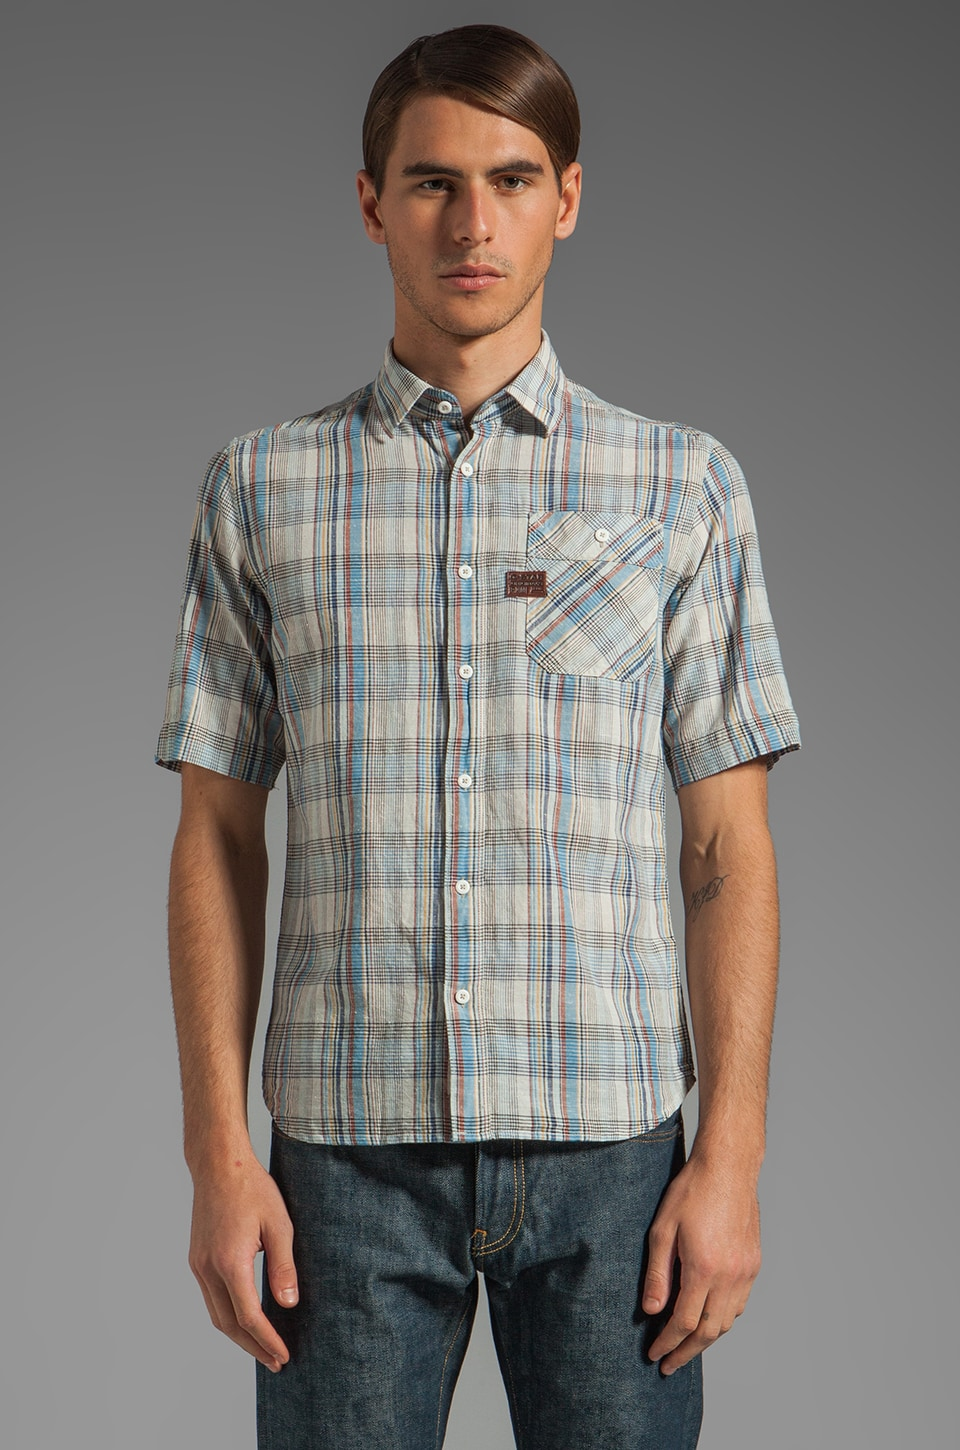 G-Star Ruper Short Sleeve Shirt in Oatmeal